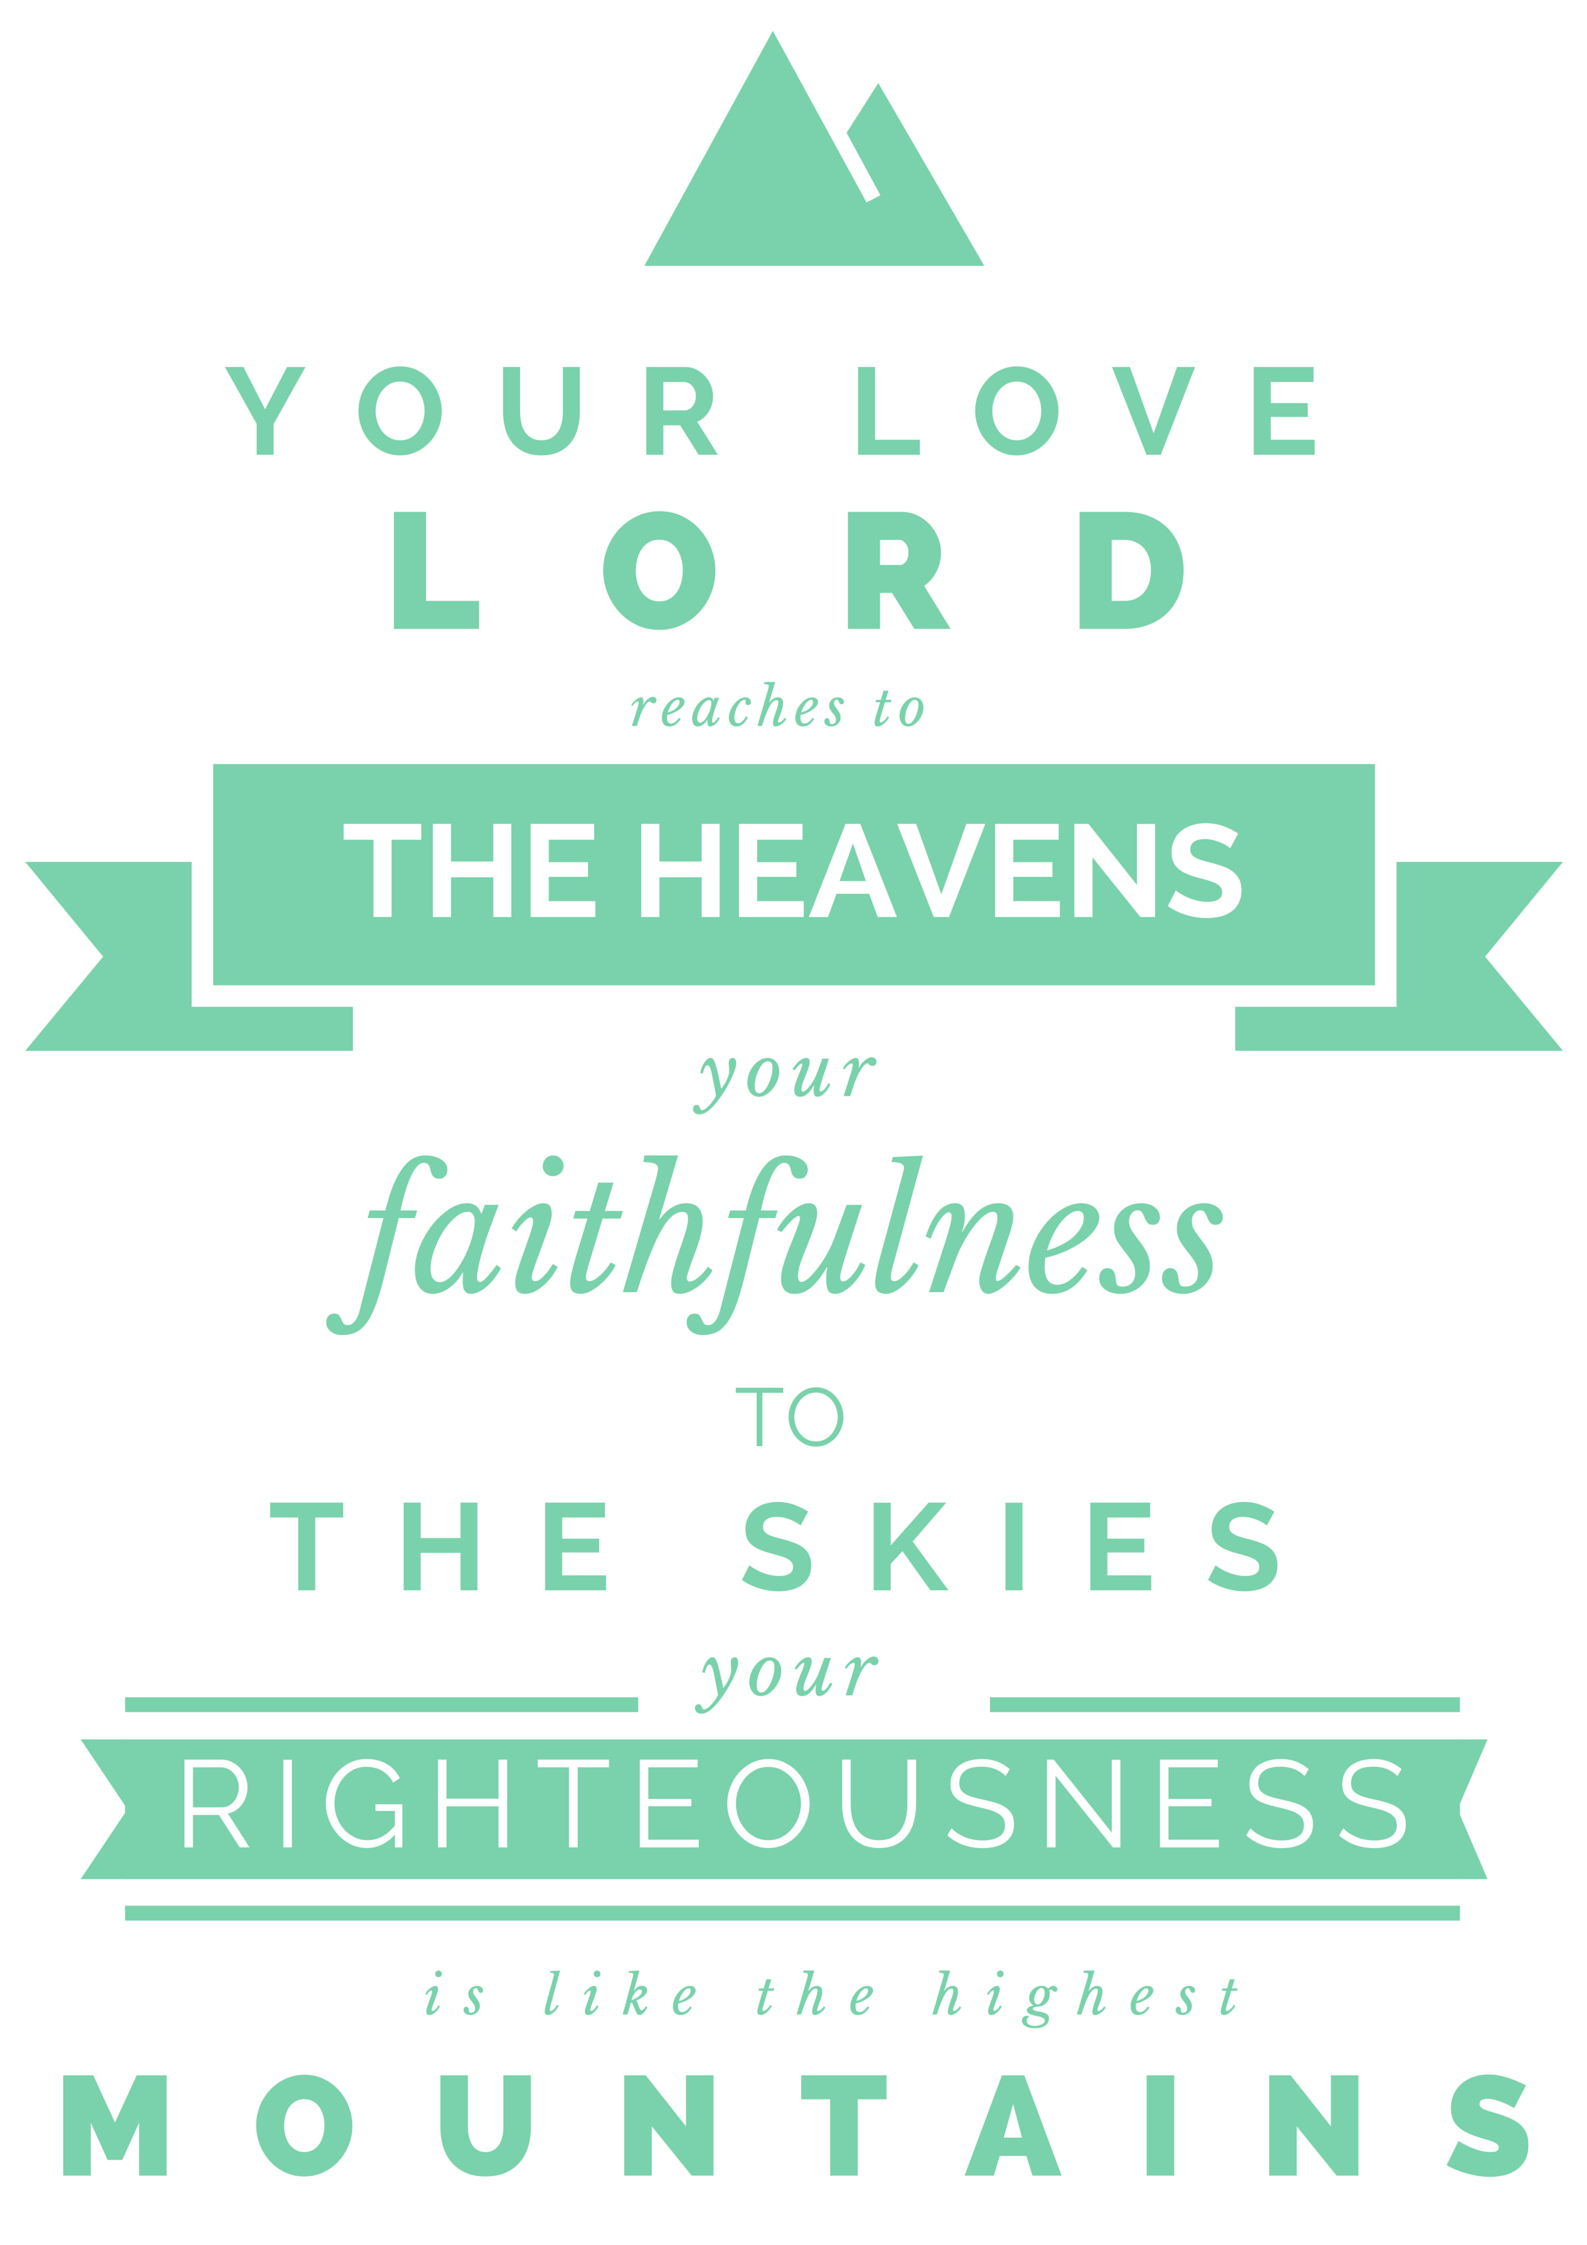 entrusted-ministries-your-love-lord-reaches-to-the-heavens-2.png